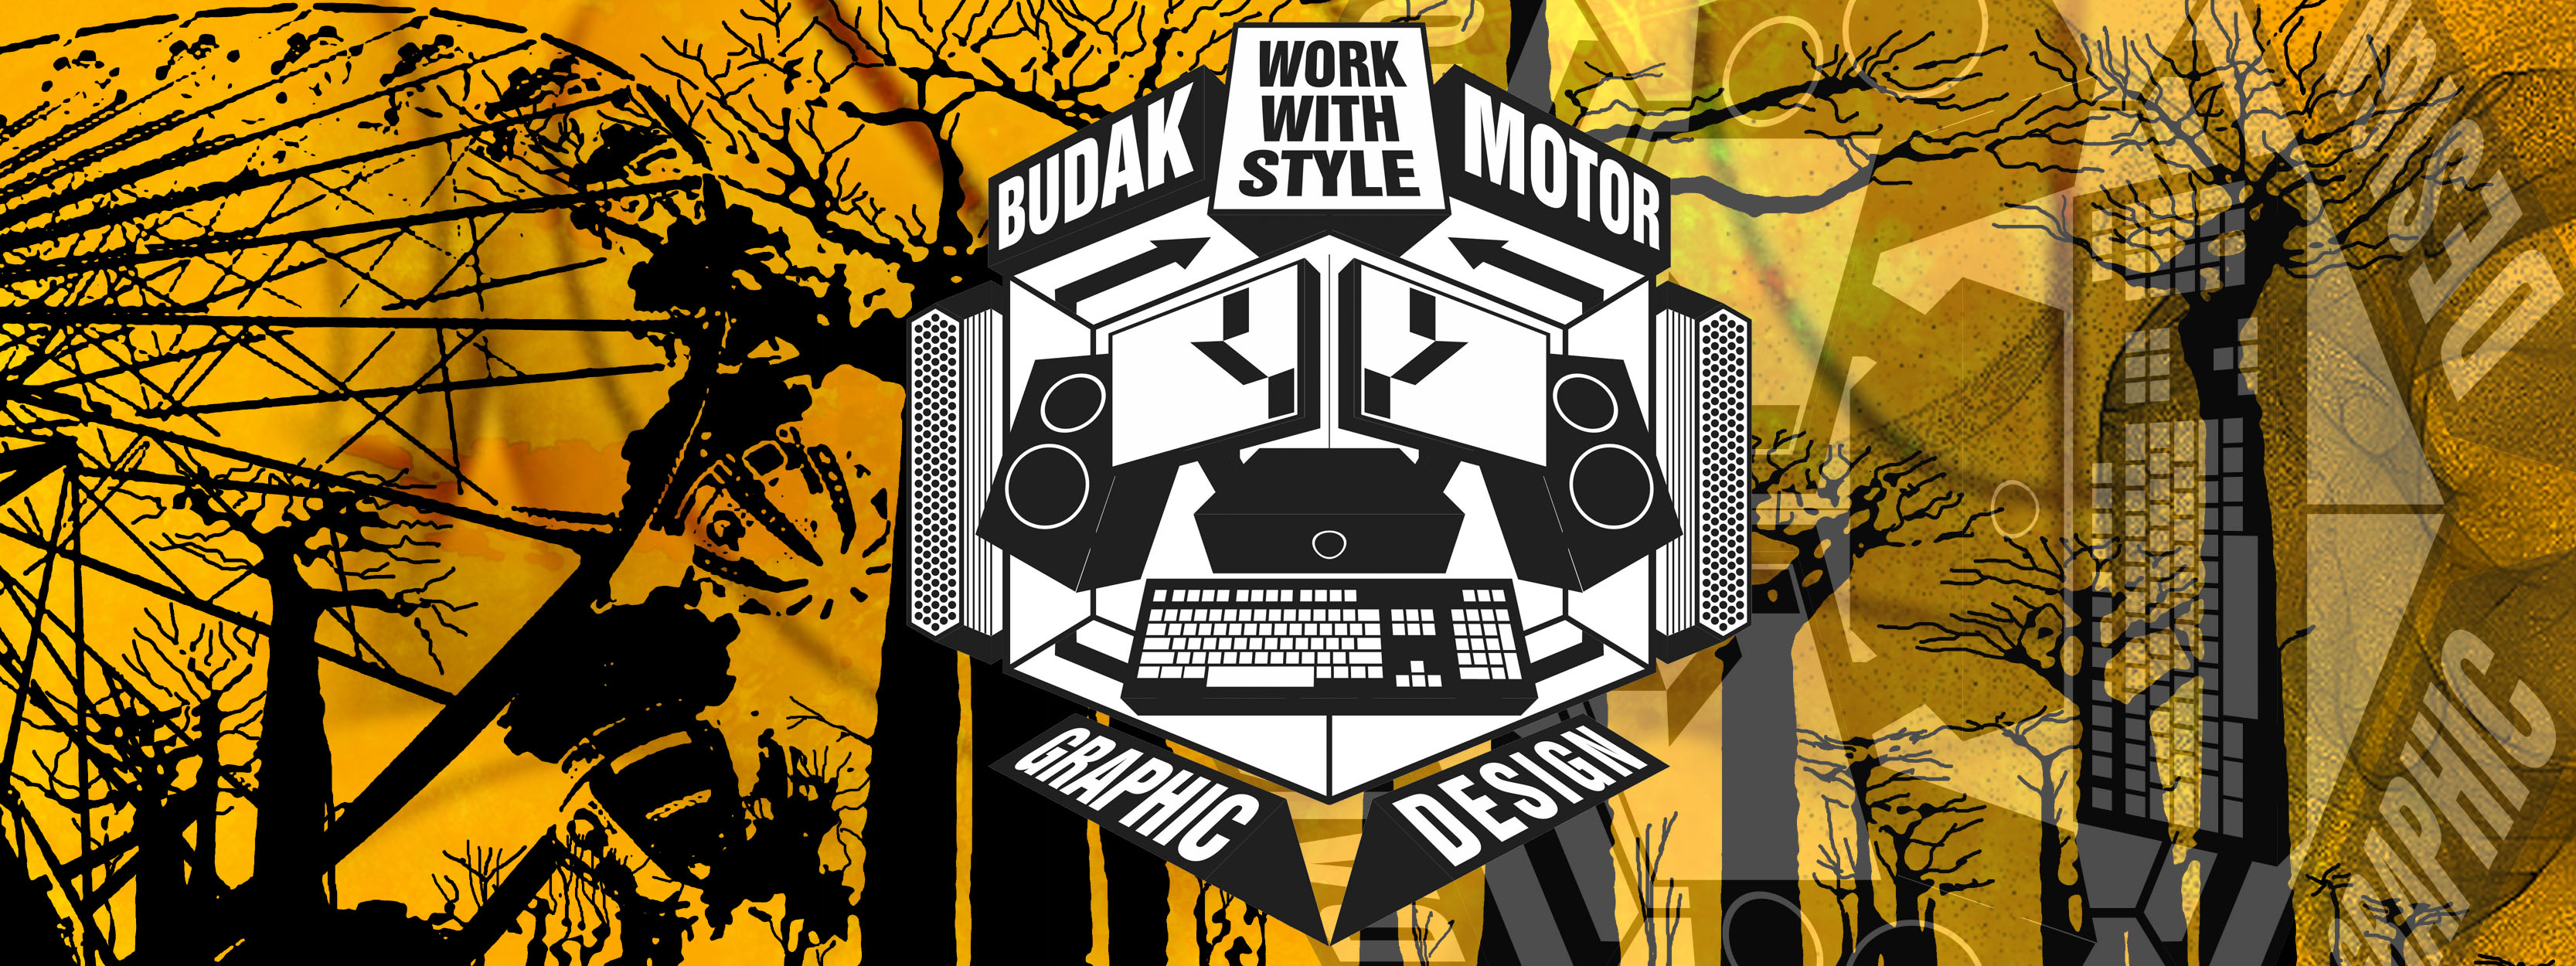 Graphic Design oplu budakmotor